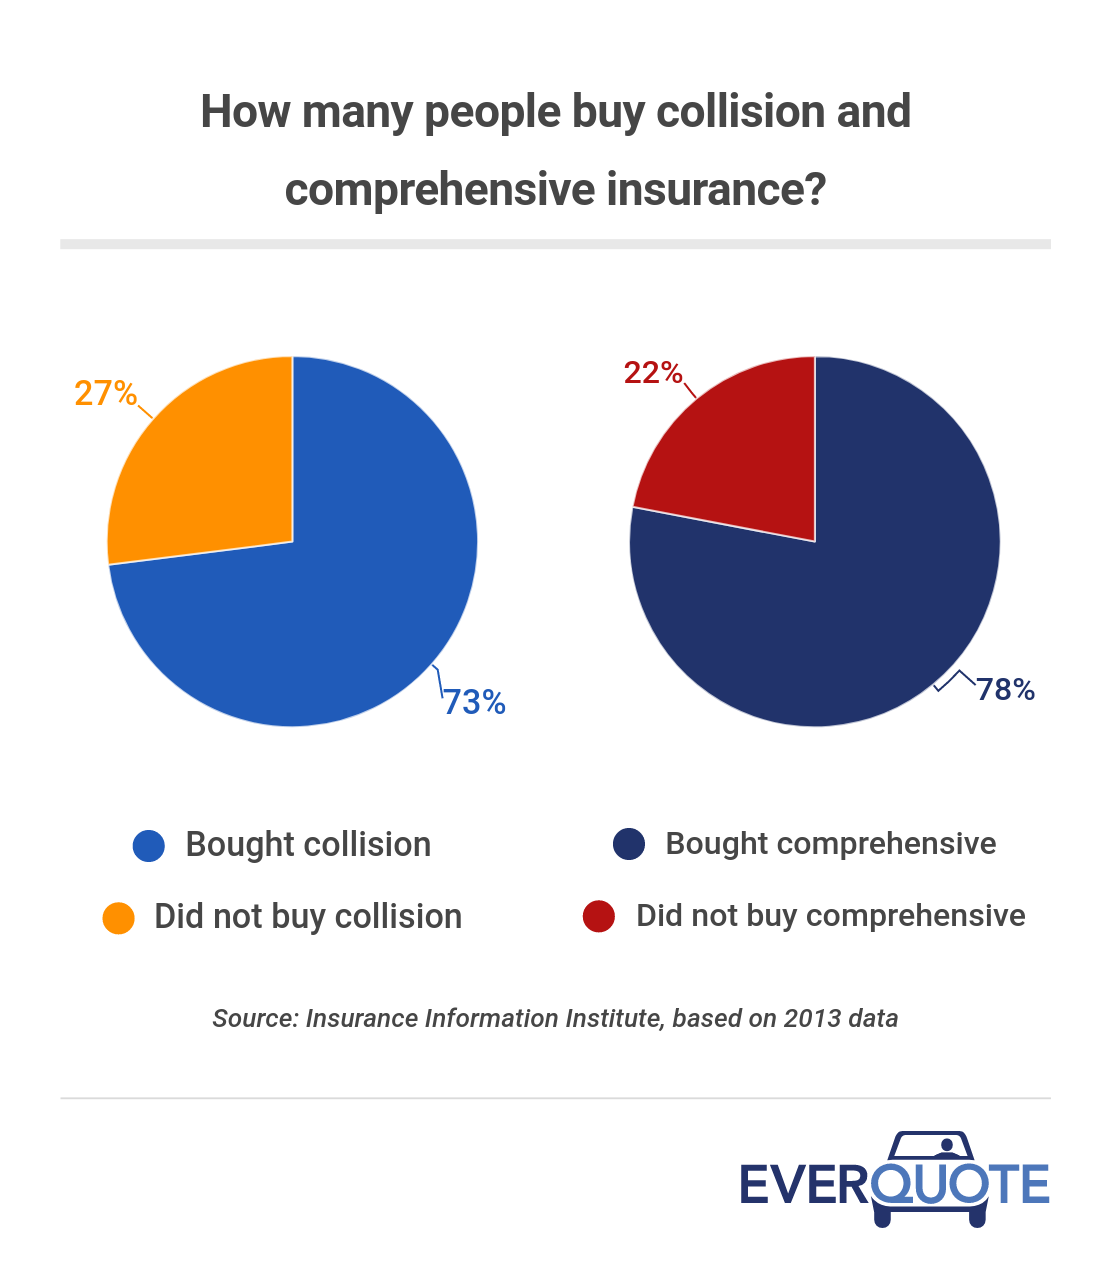 How many people buy collision and comprehensive insurance?